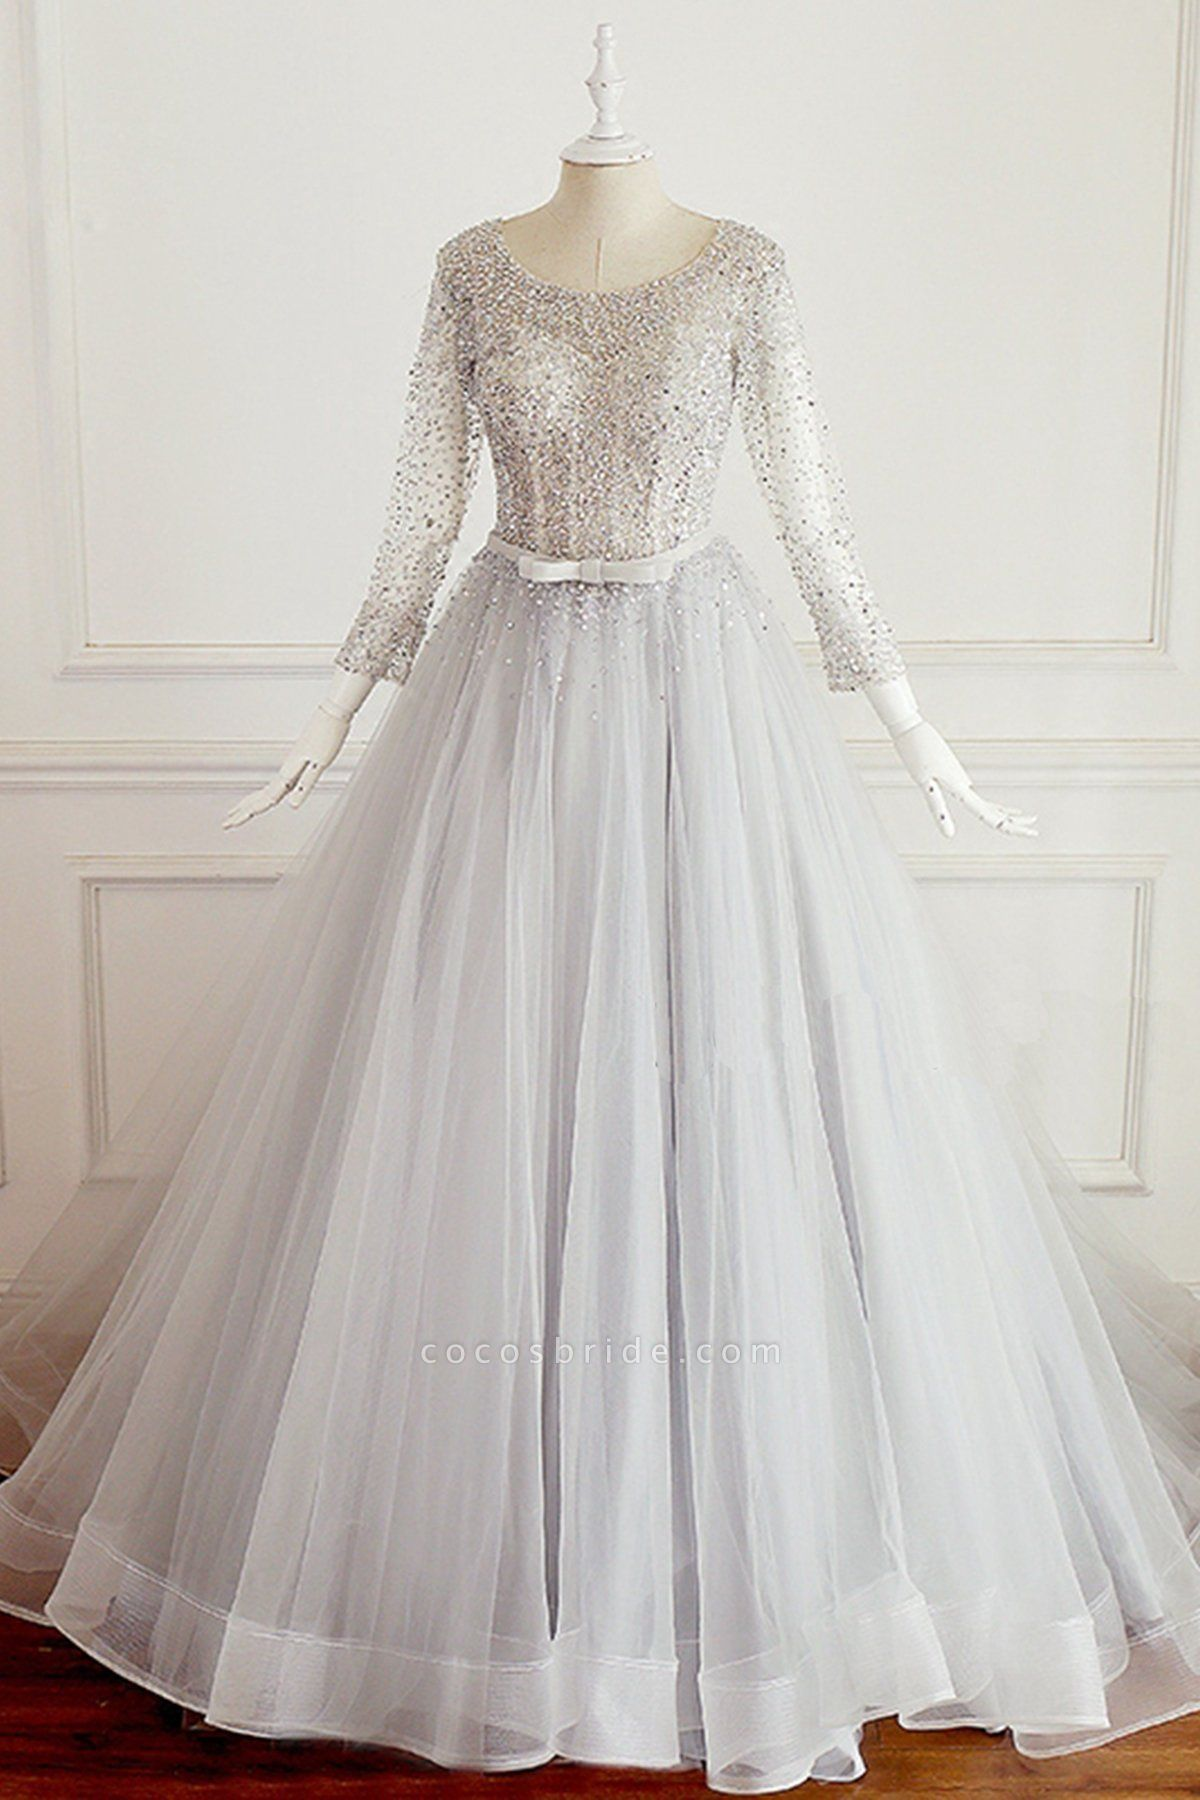 Light Gray Tulle Silver Beaded Long Sleeve Wedding Dress With Bow